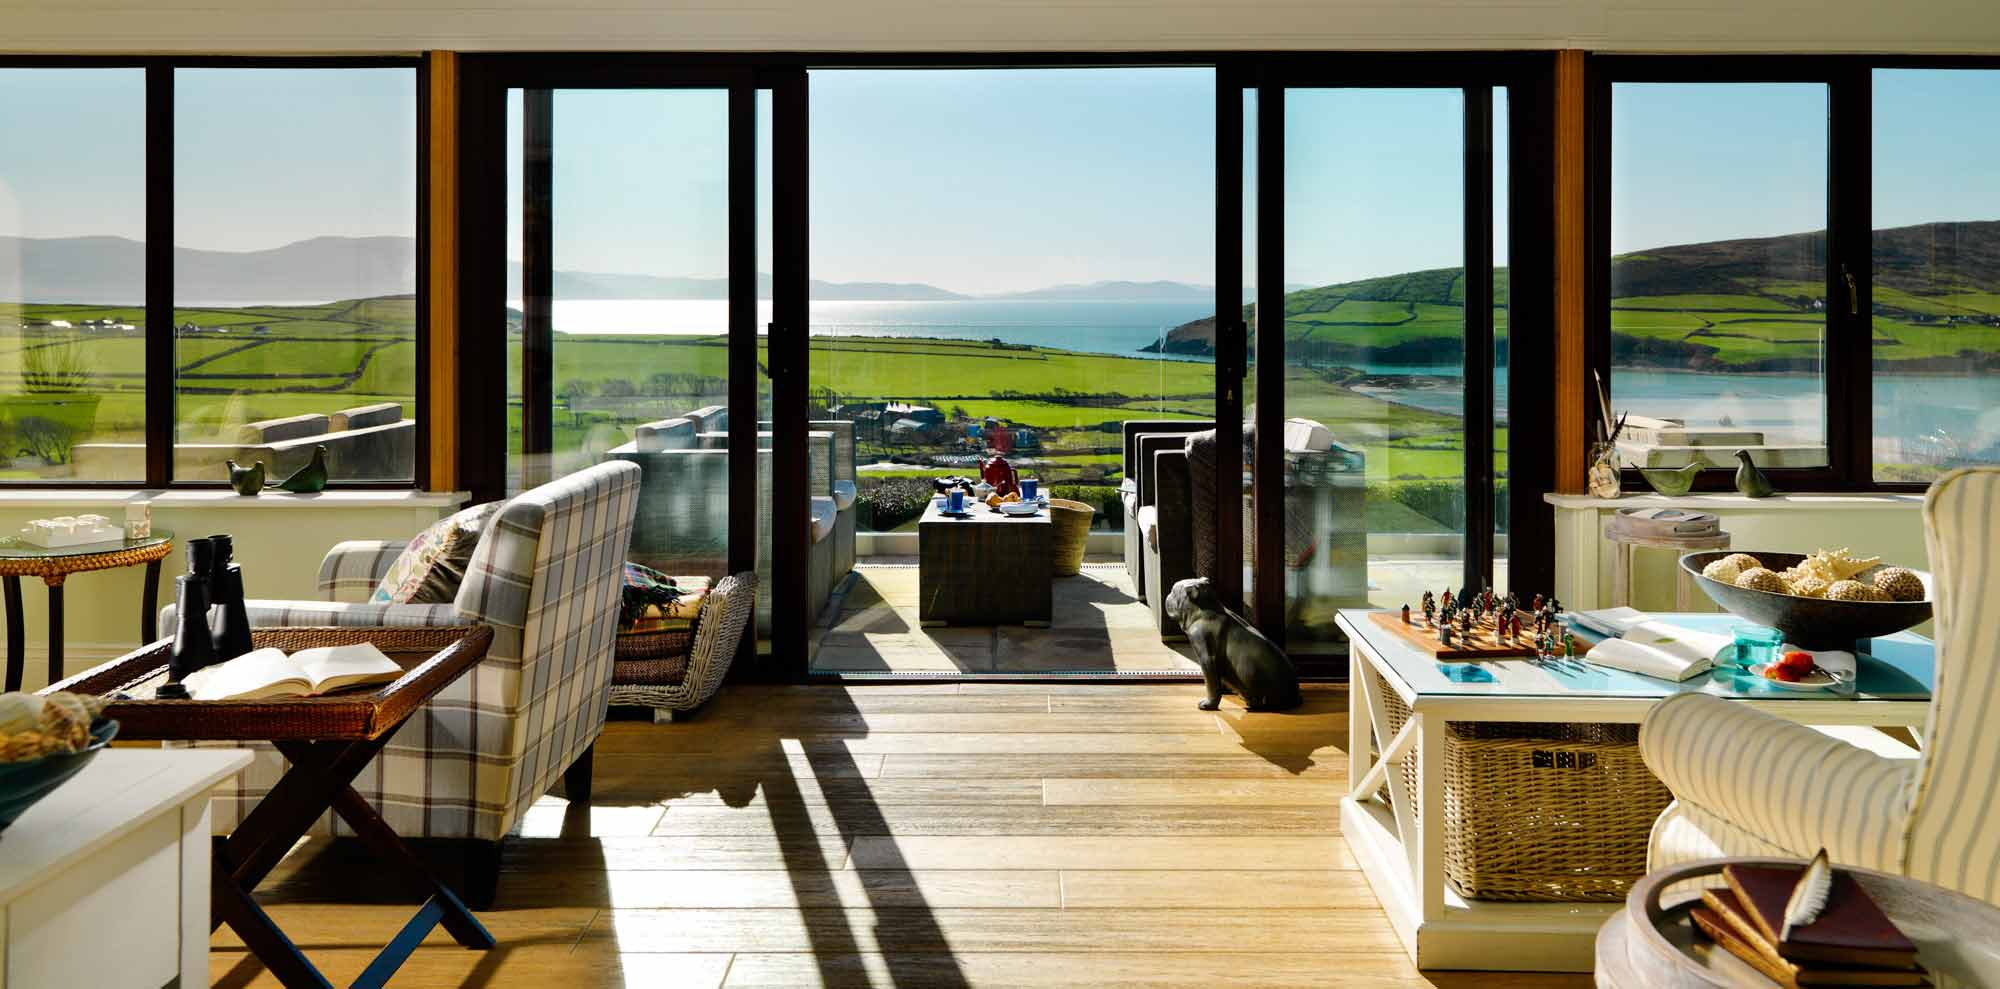 Pax House Accommodation In Dingle Kerry Ireland